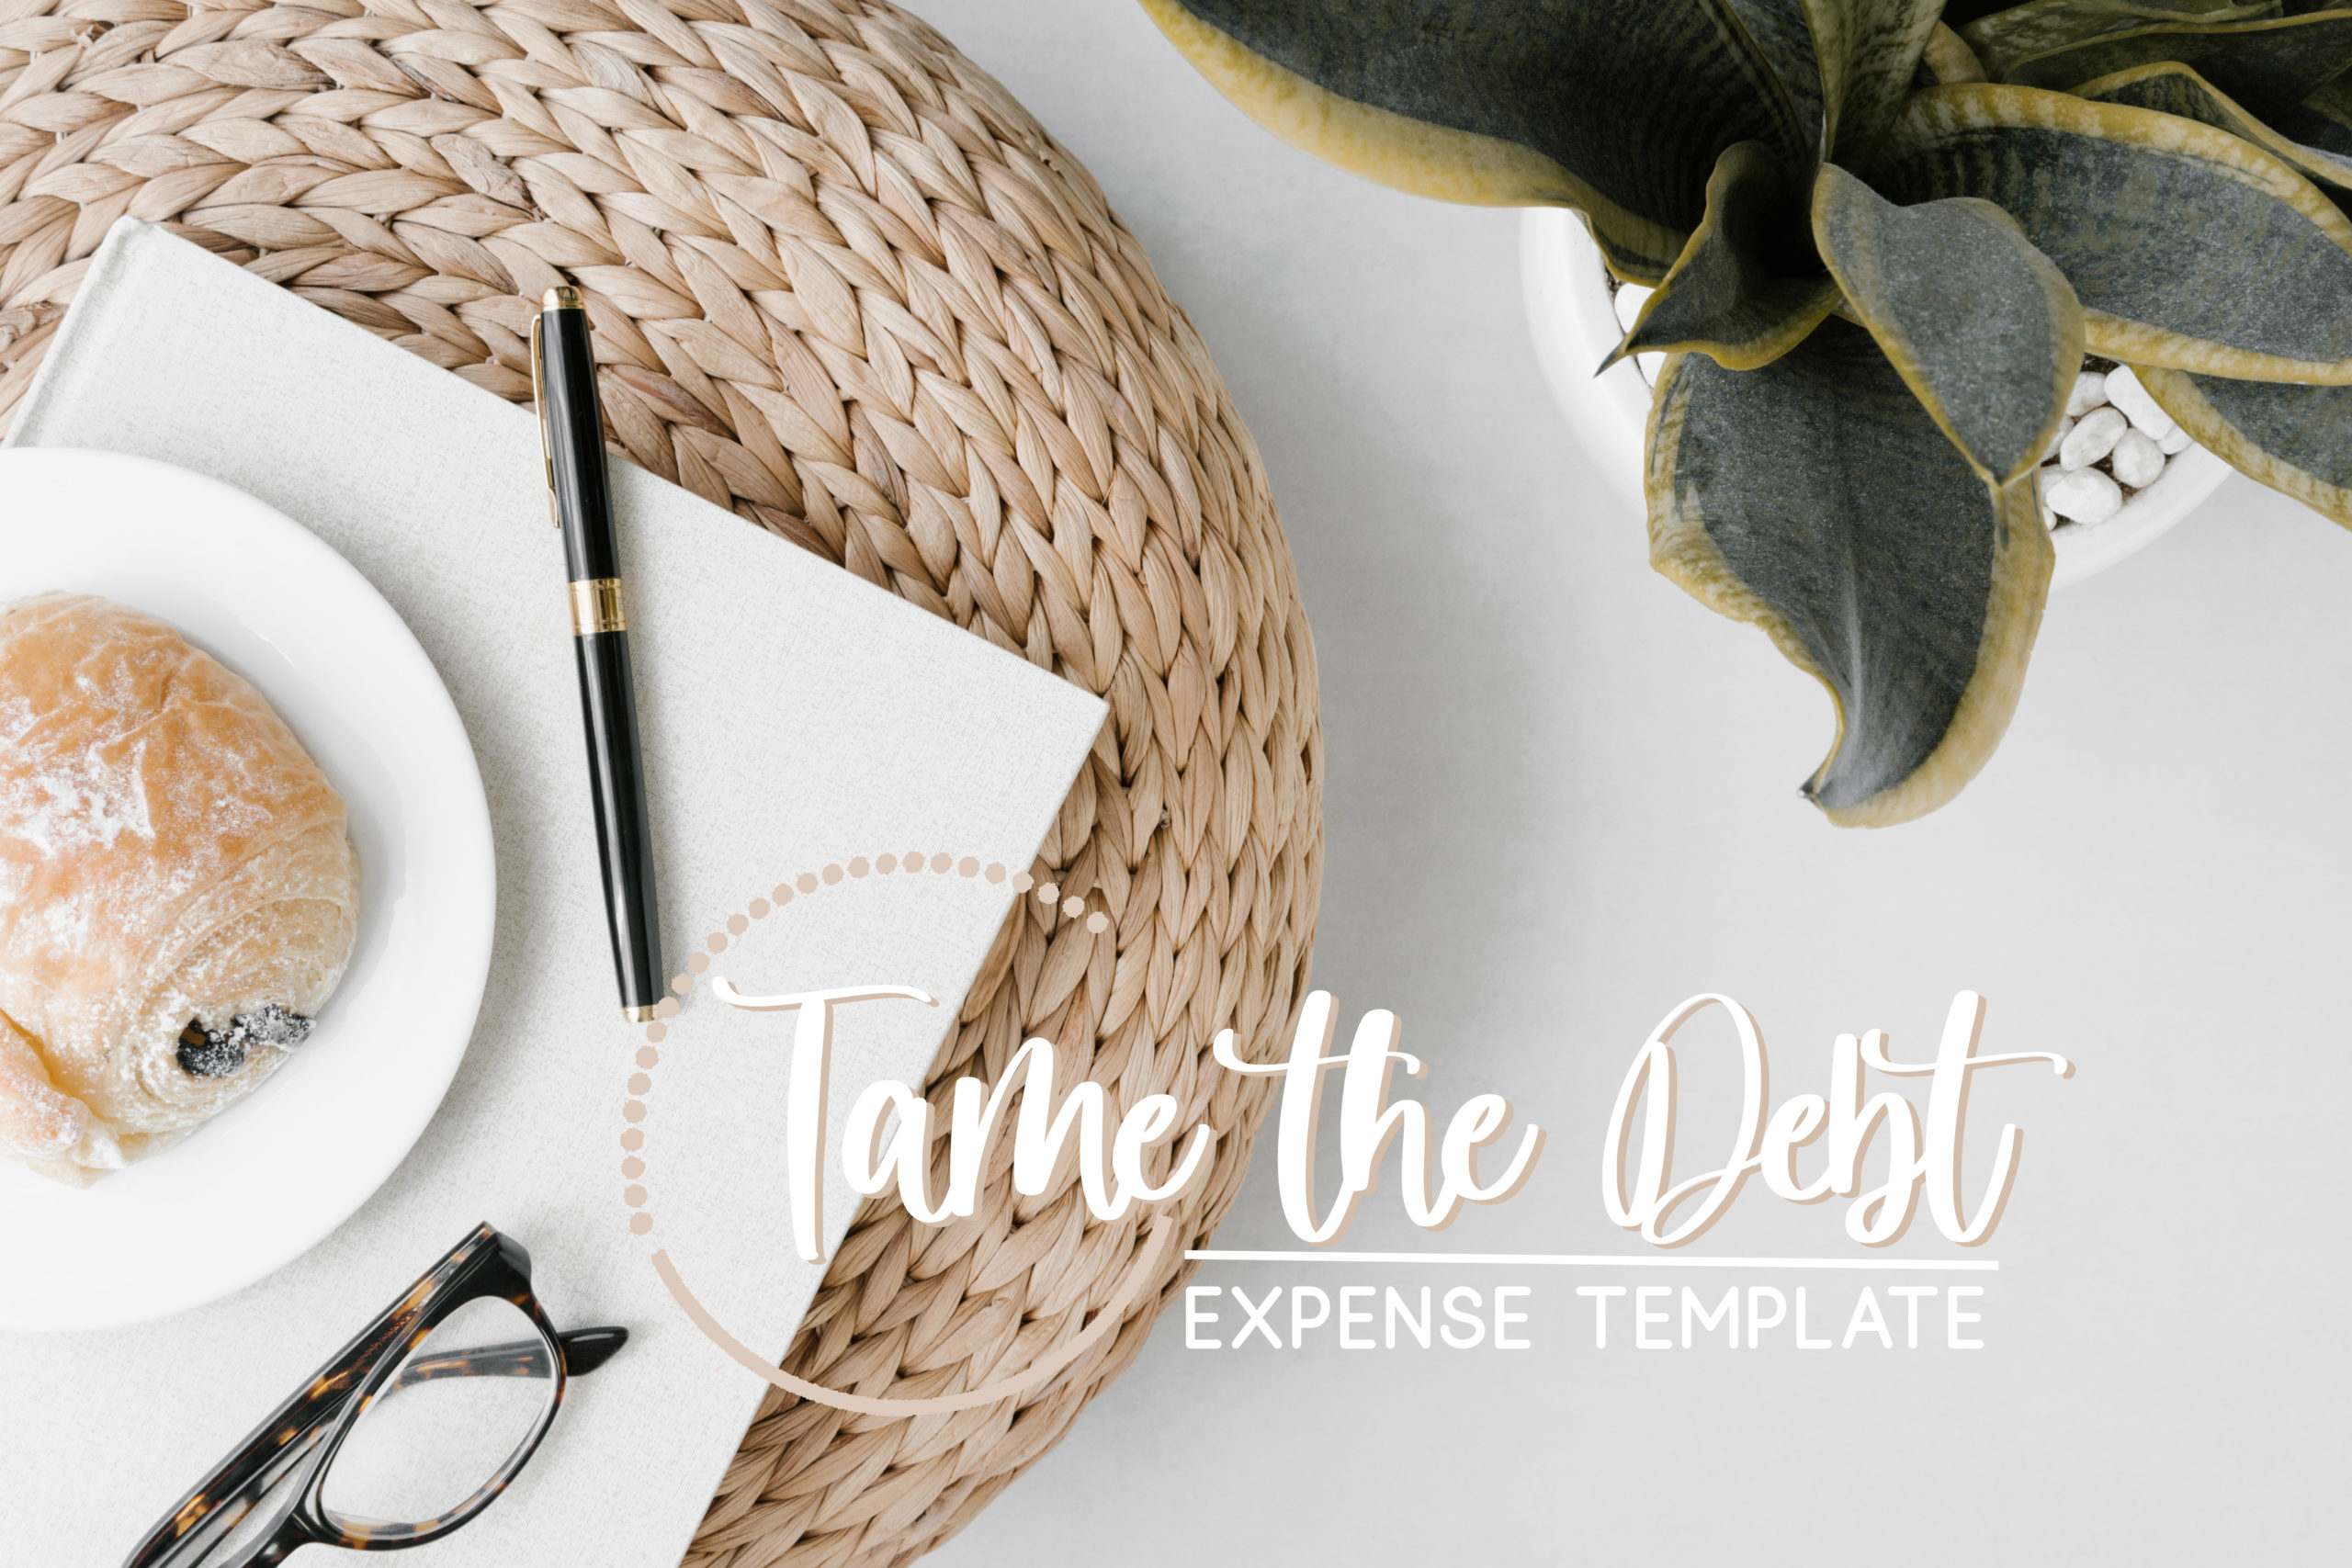 Taming The Debt: My Expense Template